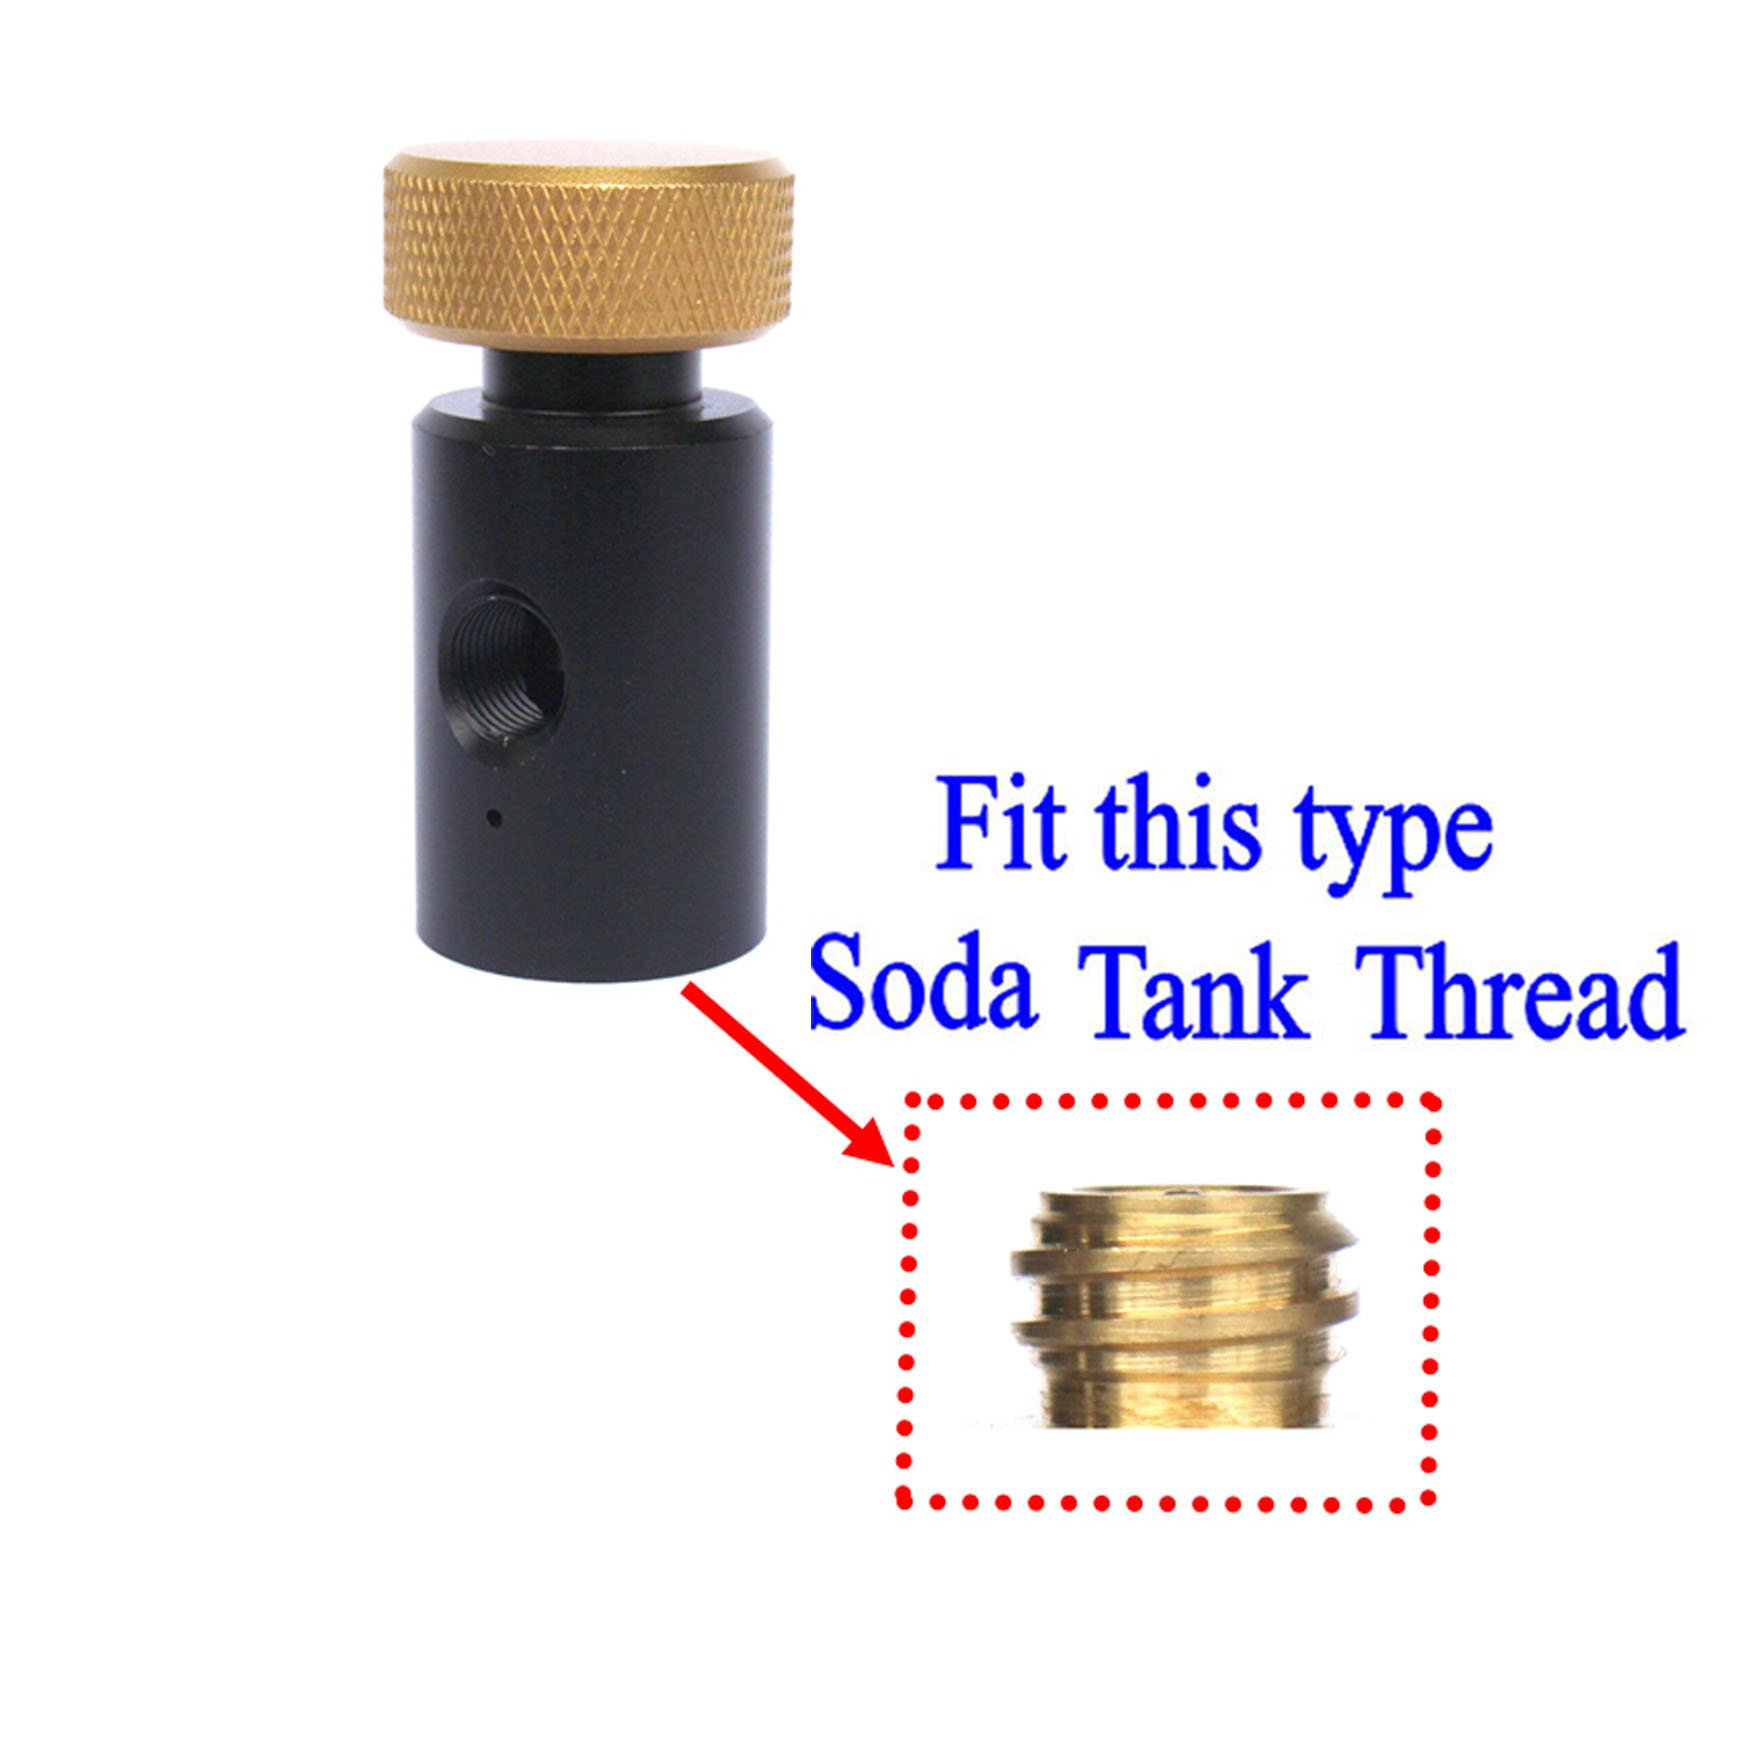 New CO2 ASA On/Off Adapter For Fill Soda tank